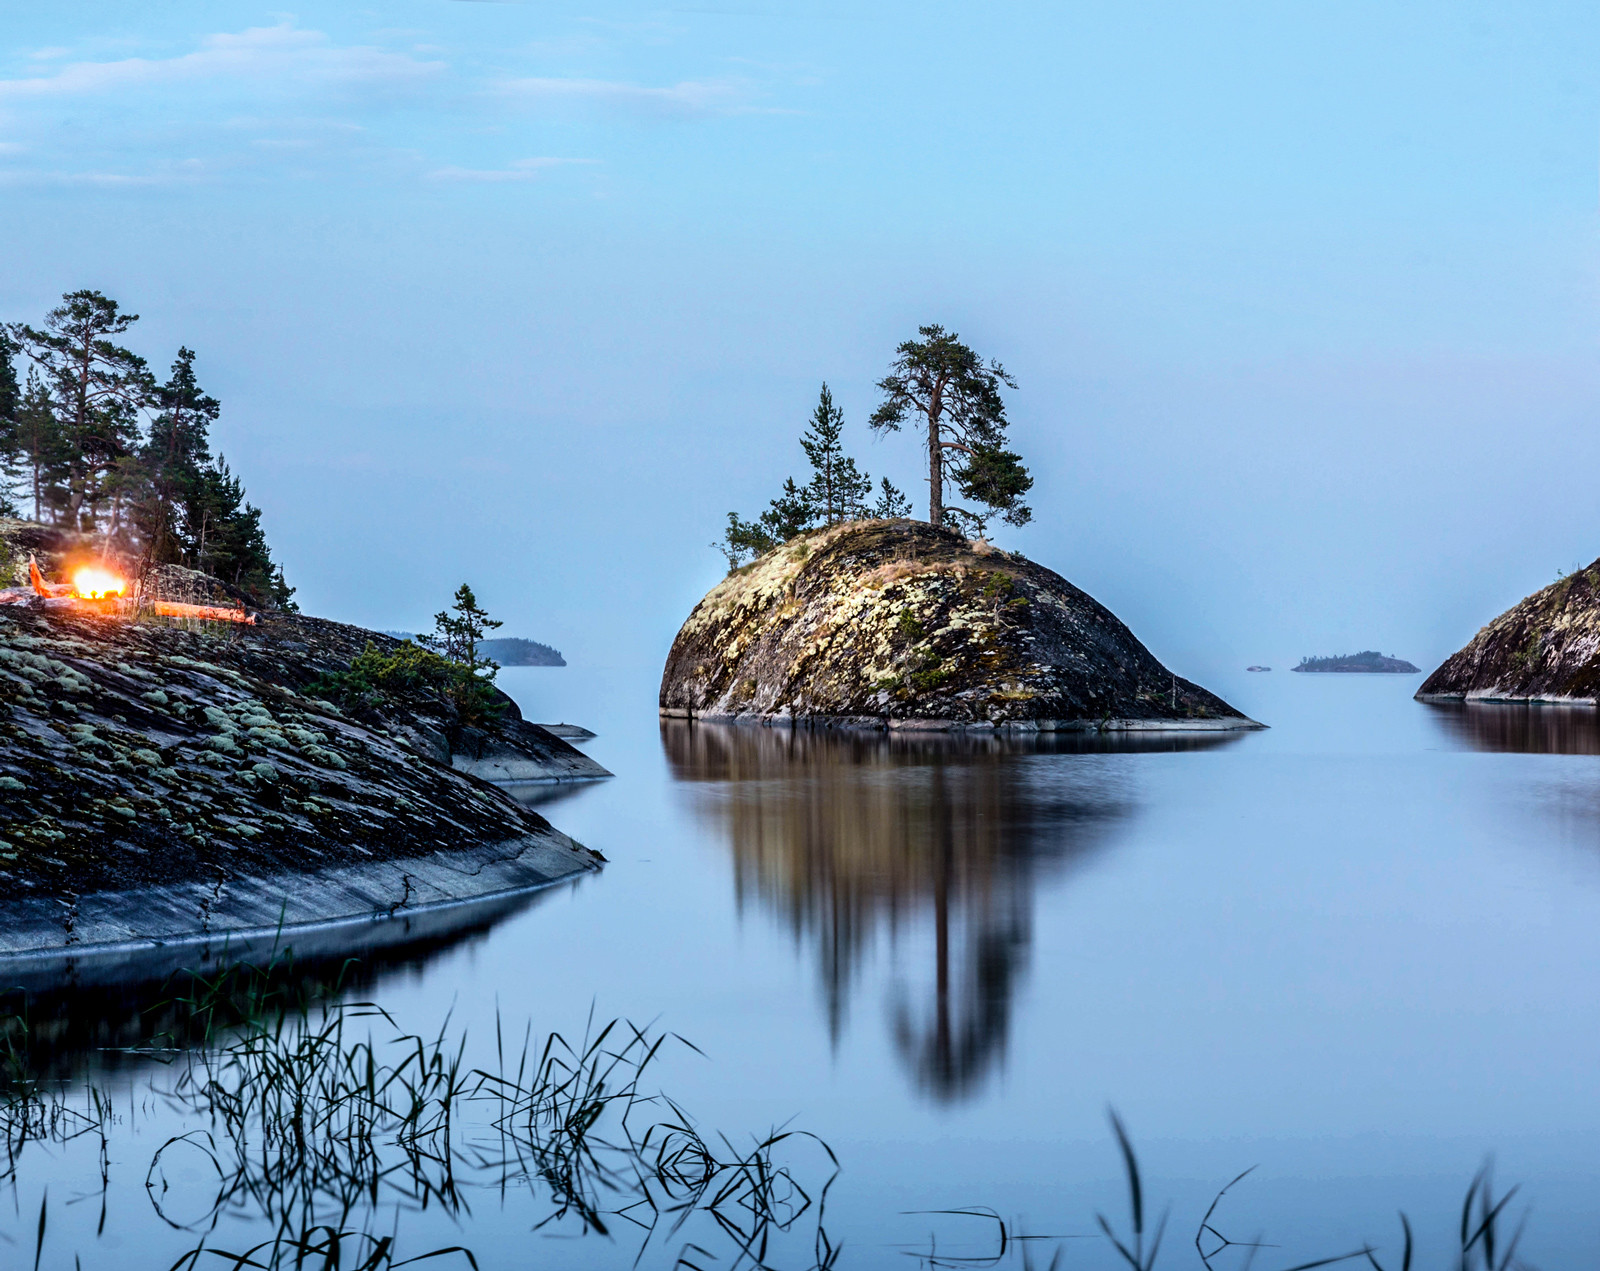 10 of Russia's deepest lakes - Russia Beyond